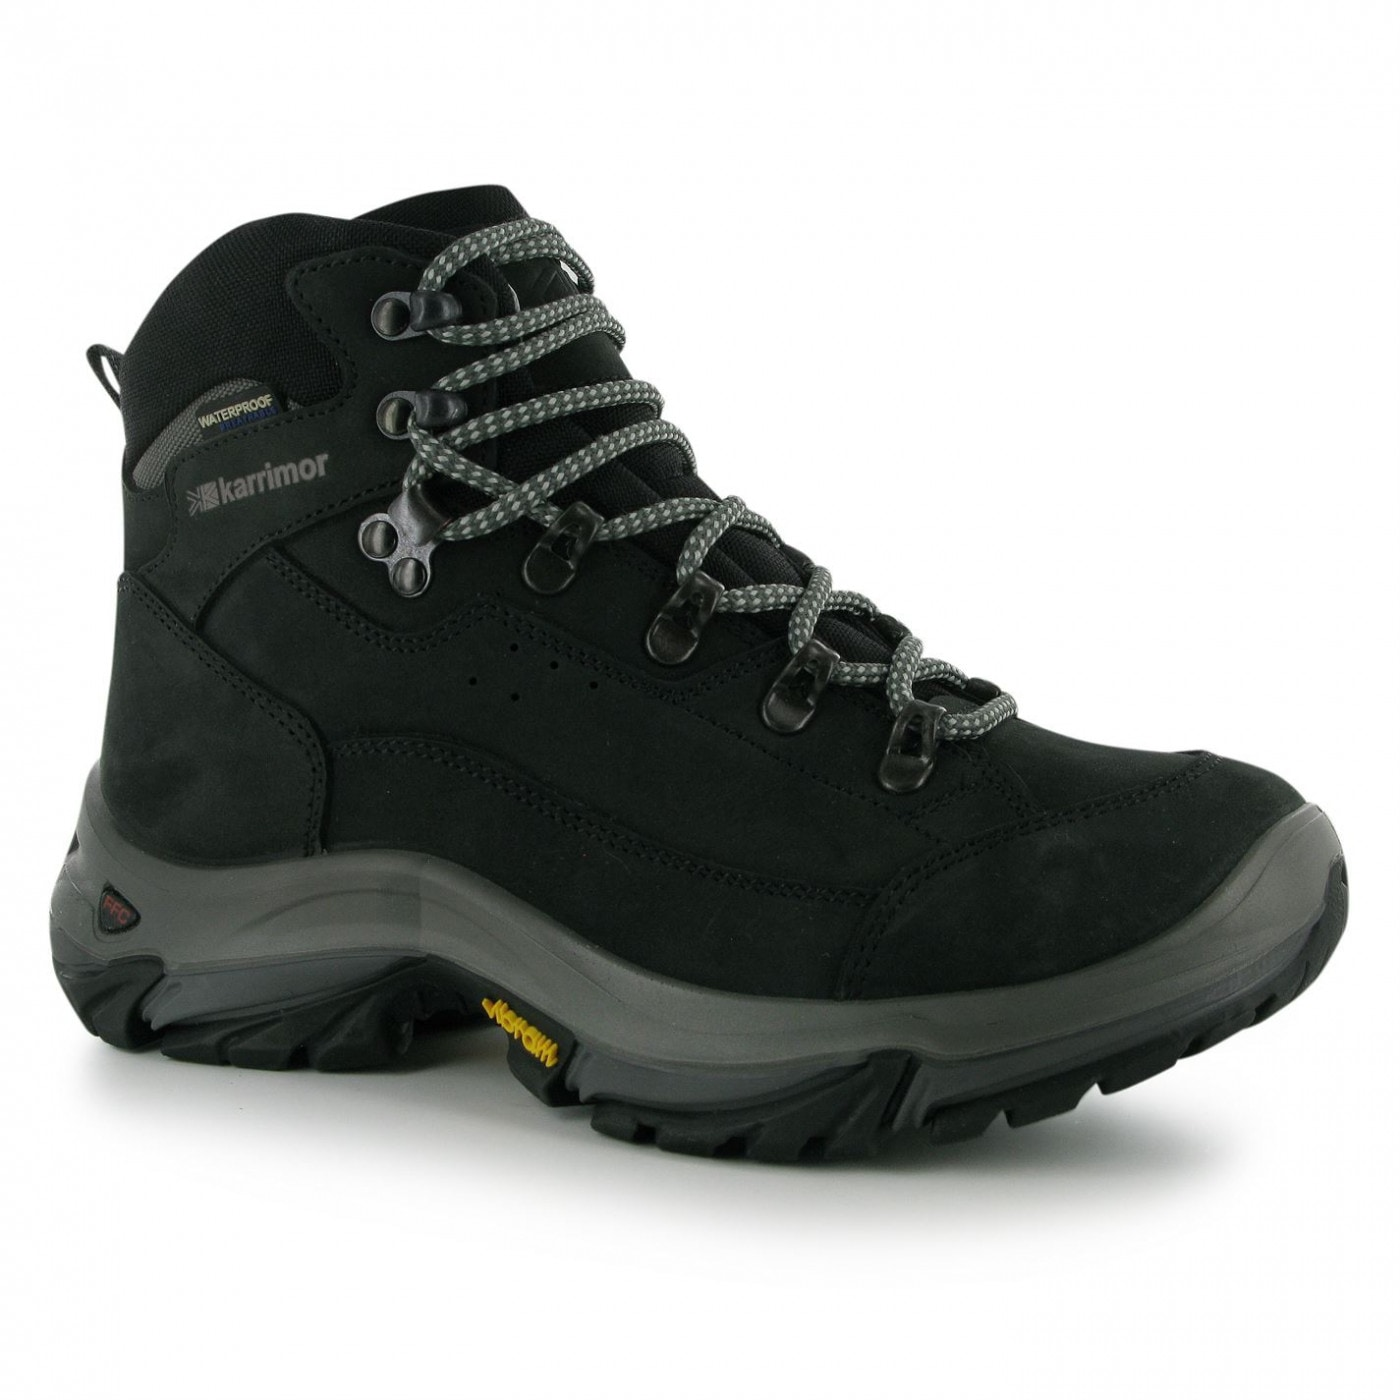 Karrimor KSB Brecon Ladies Walking Boots